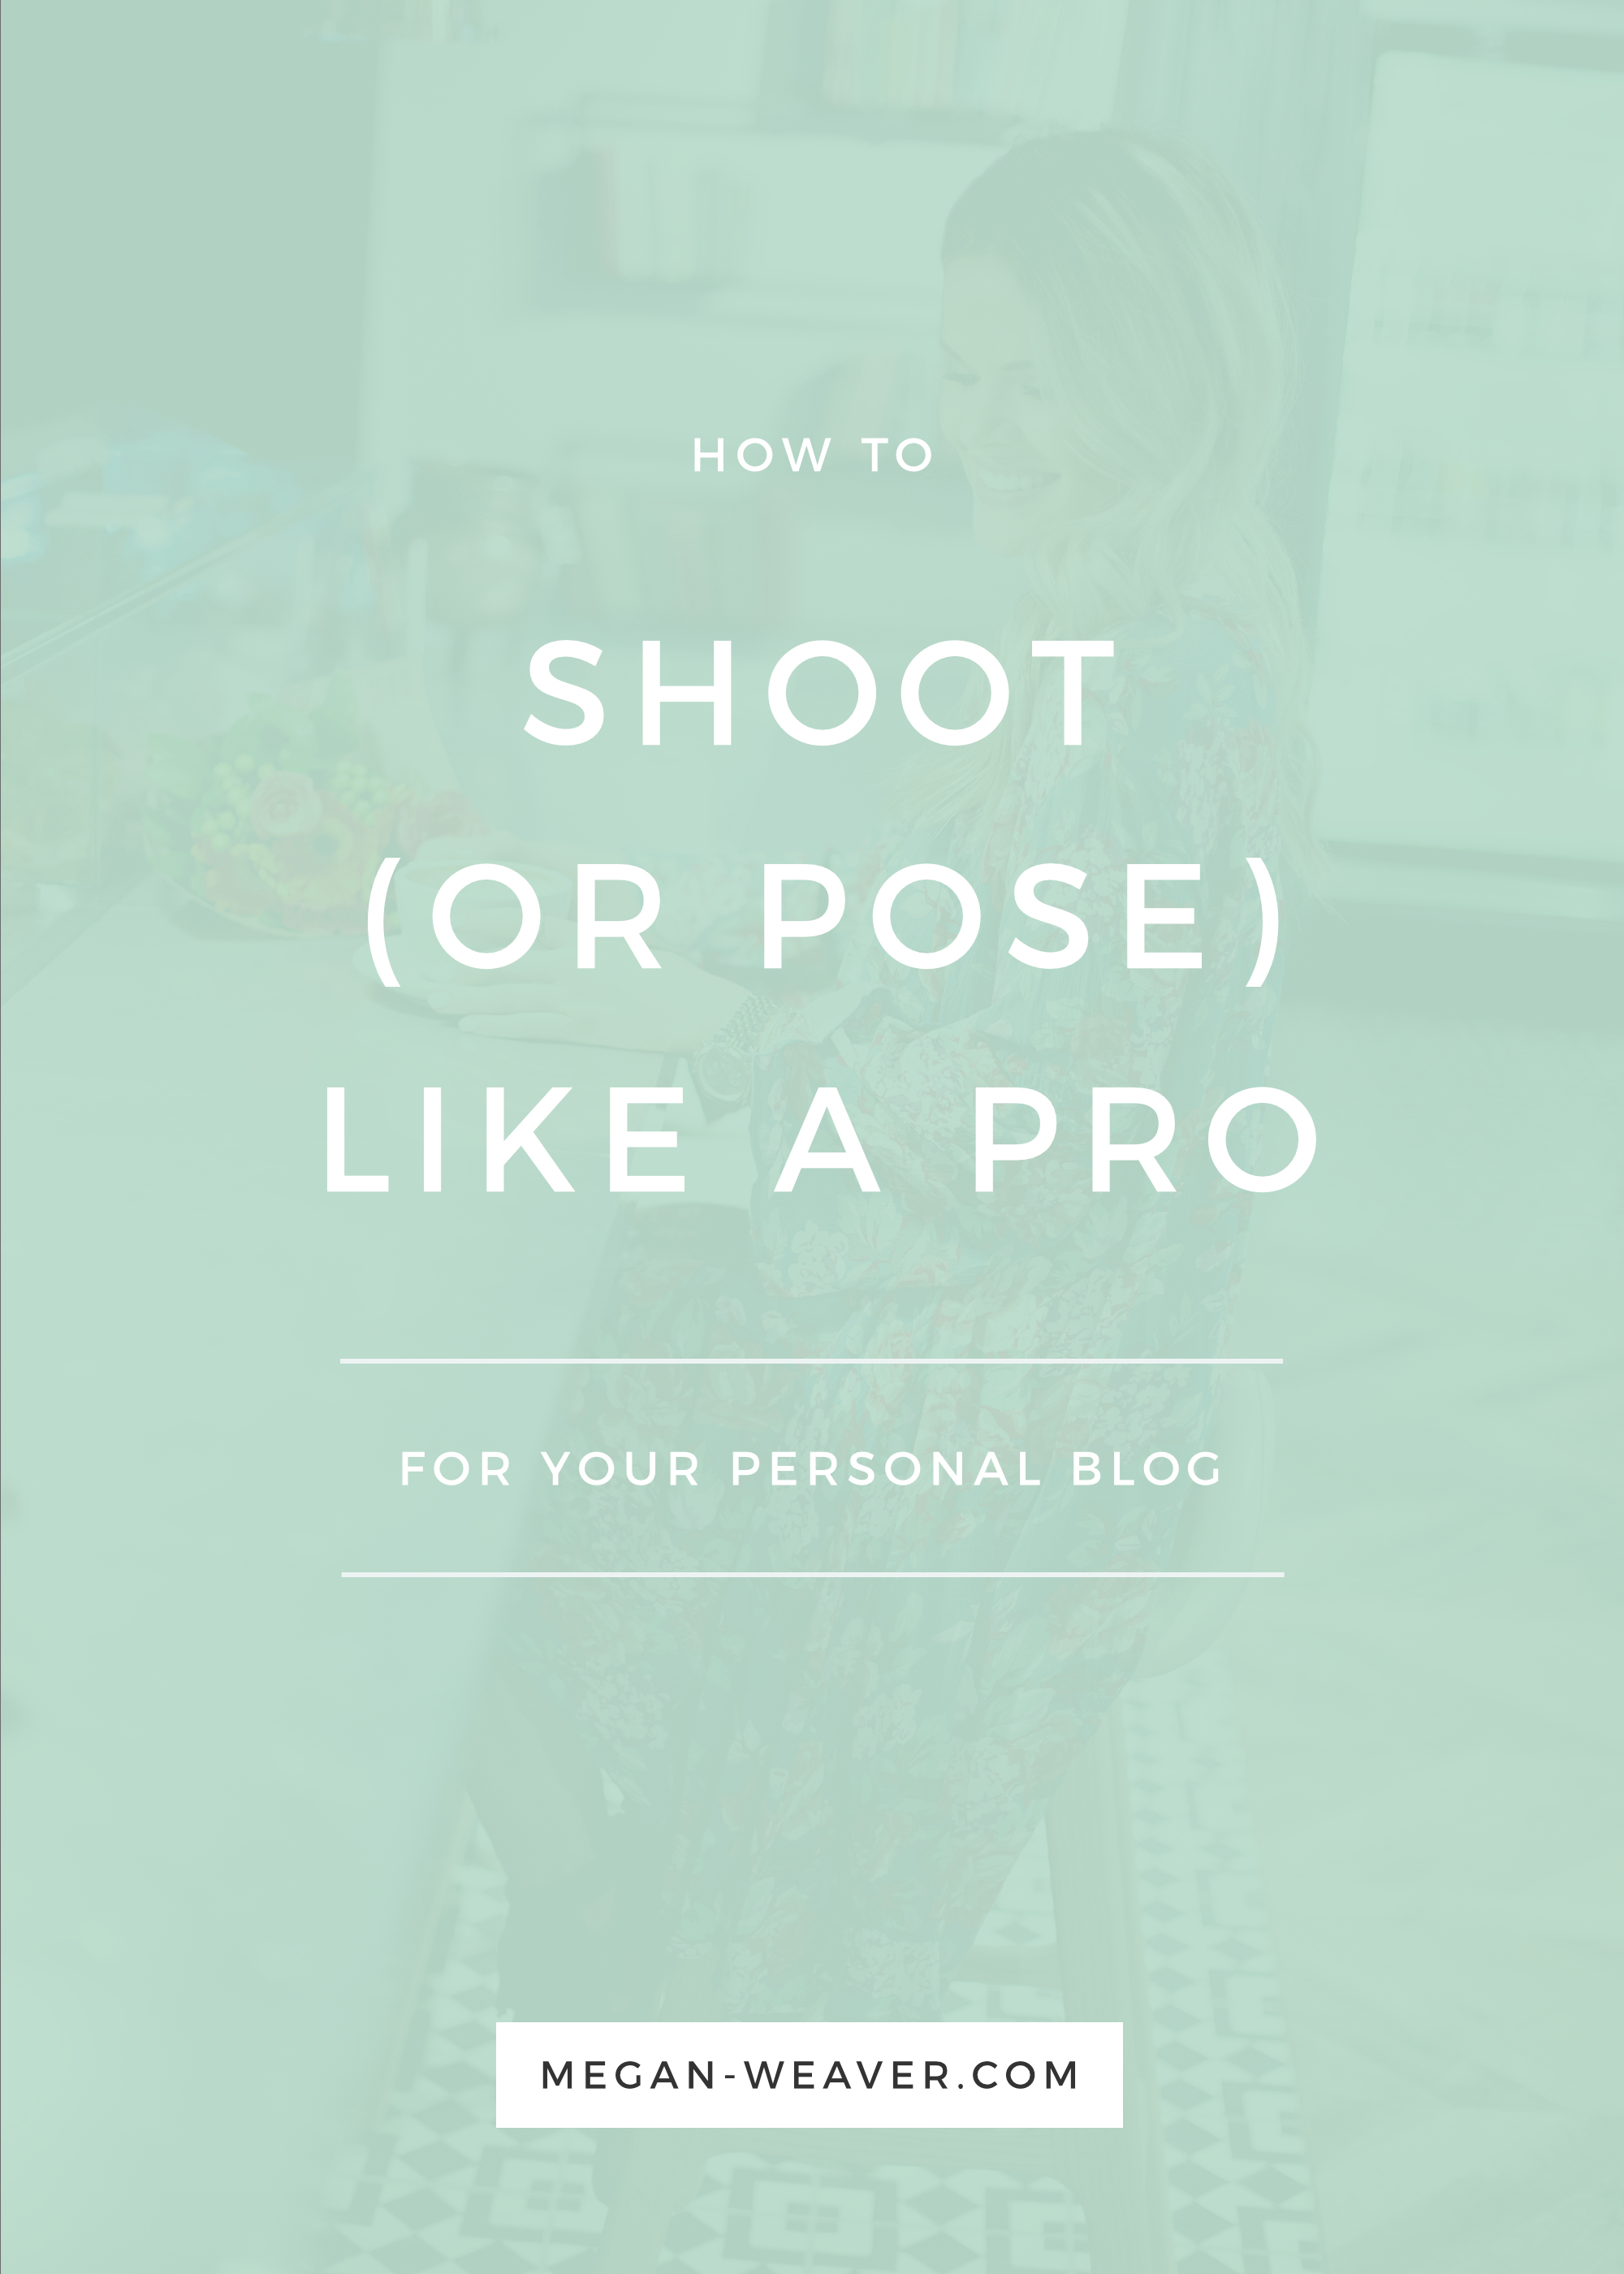 Whether you're in front of the camera or behind it, learn how to shoot—or pose—like a pro for your blog!